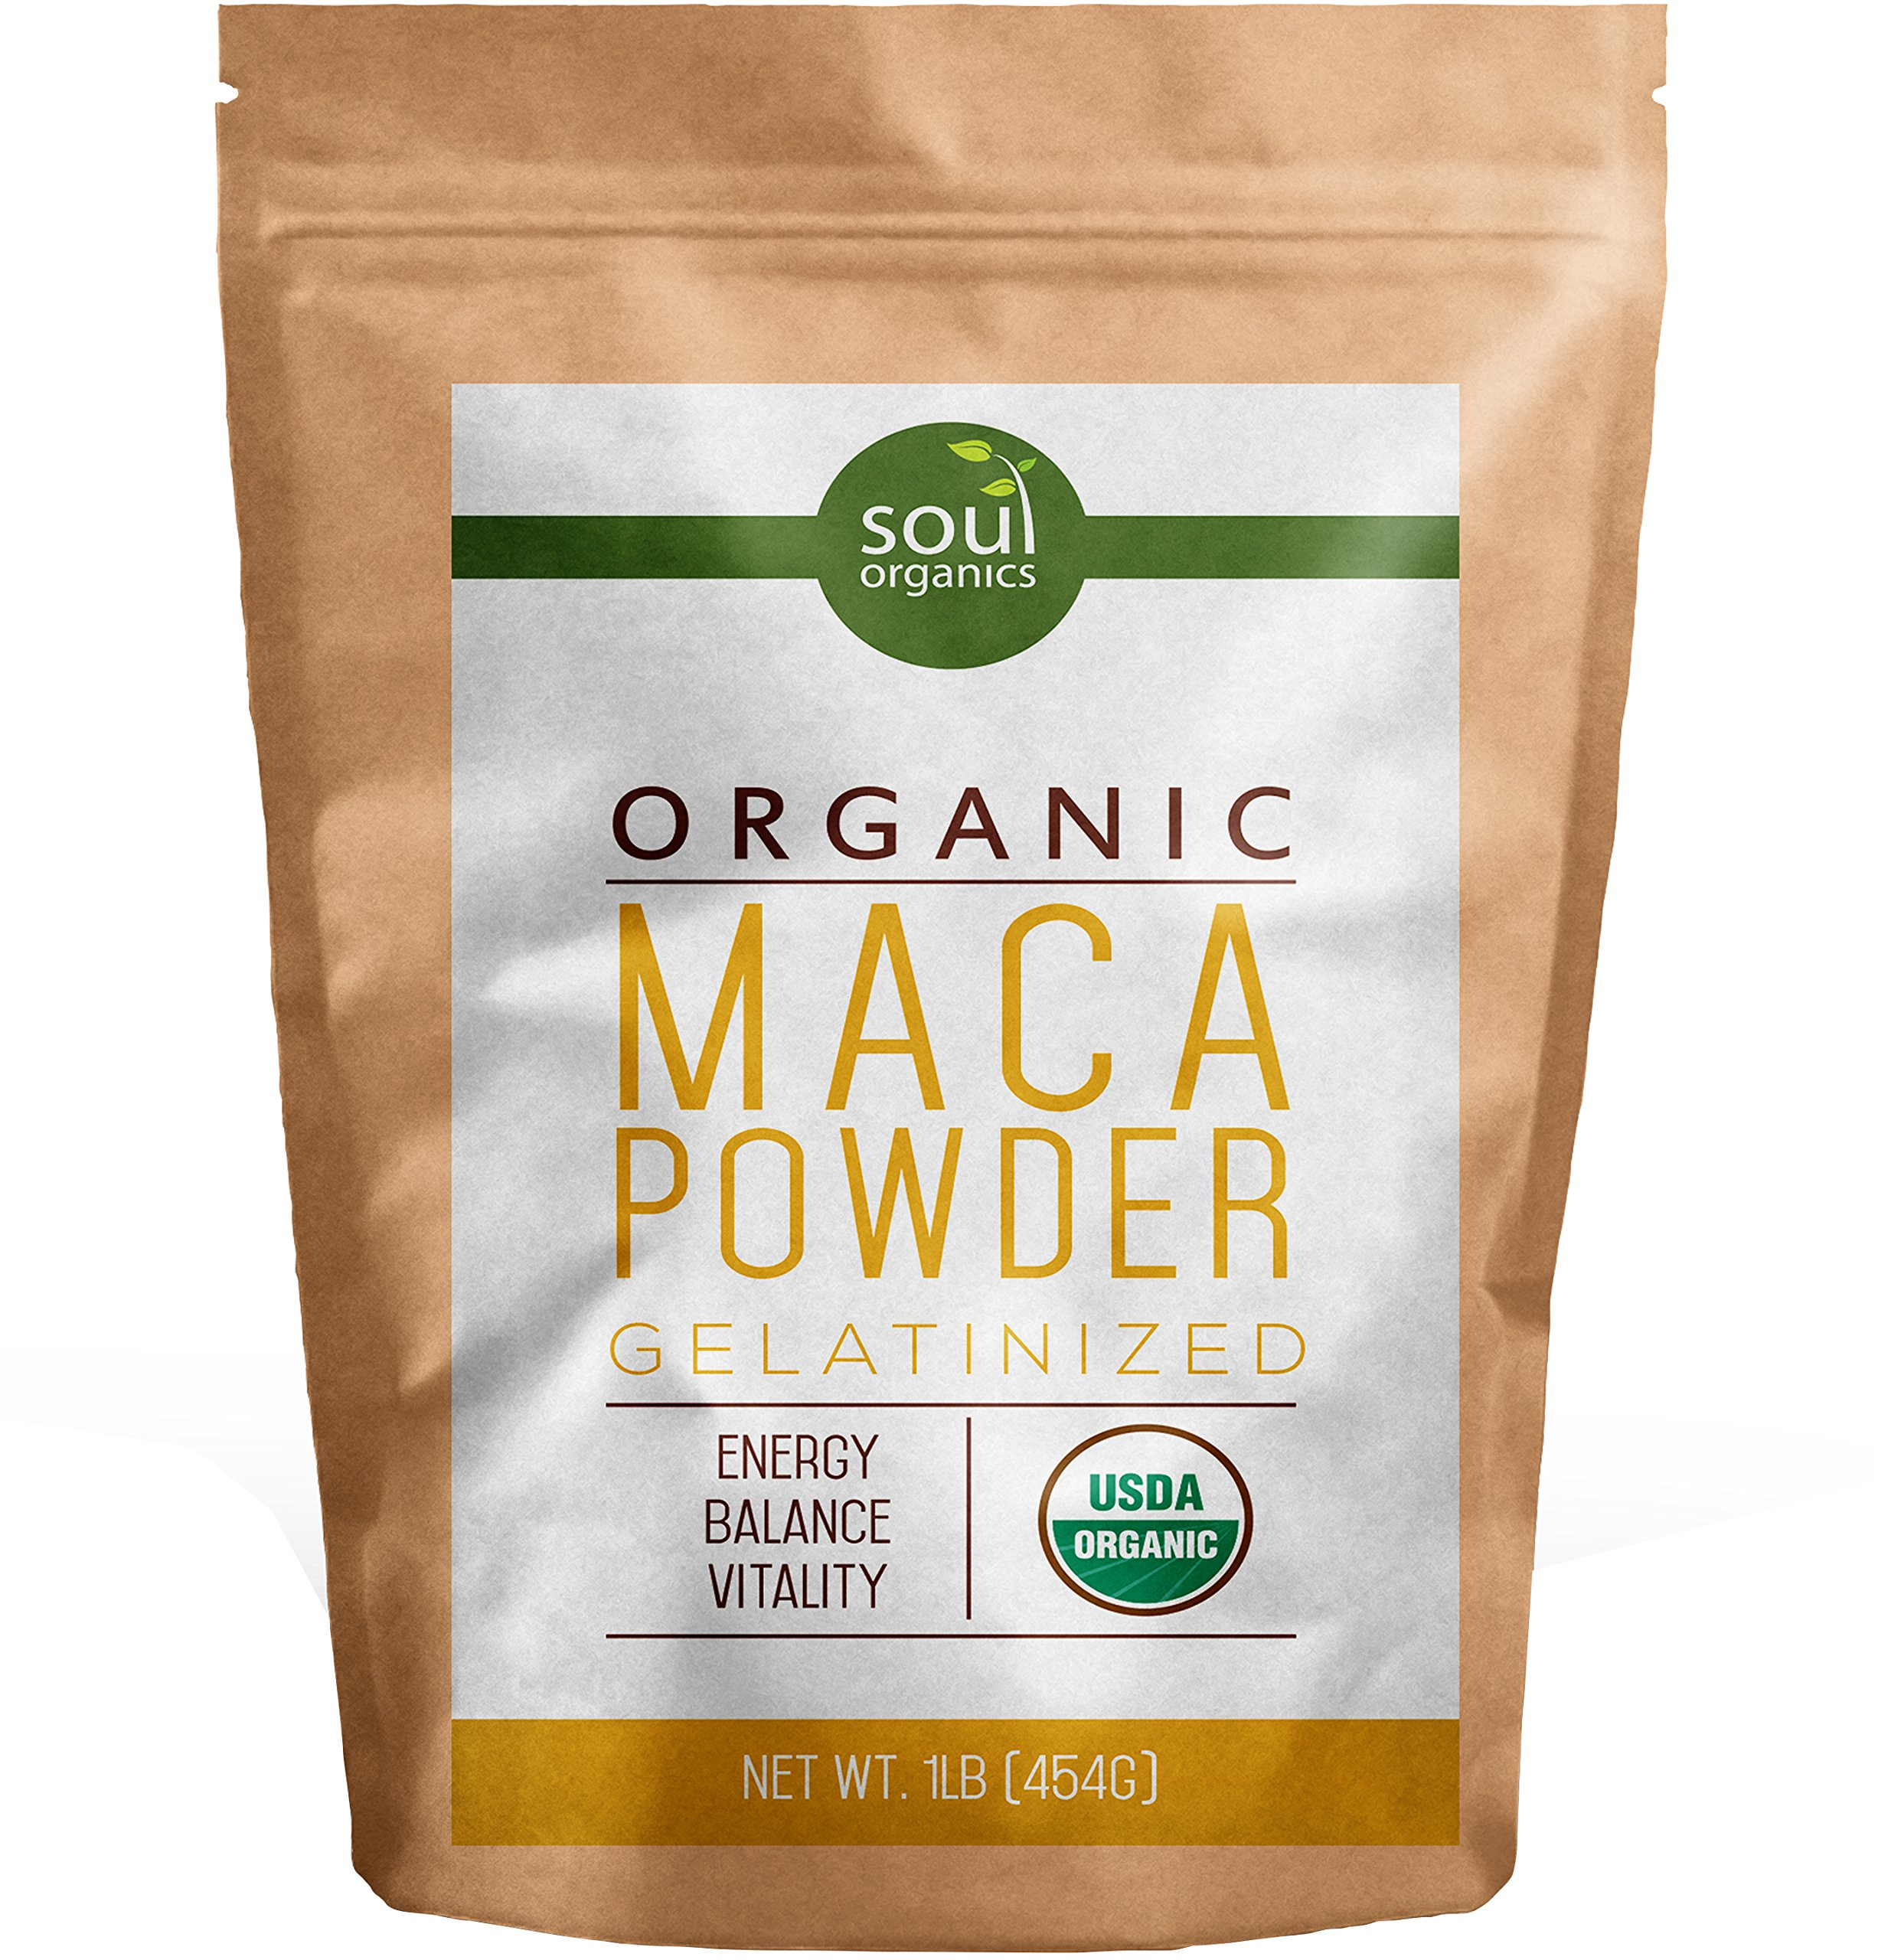 Organic Maca Powder From Maca Root - Purest Premium Vegan Superfood, Gelatinized from Raw for Fertility, Hormone Balance, Energy and Vitality for Women and Men - Yellow Maca with Black, Red Blend 1 lb